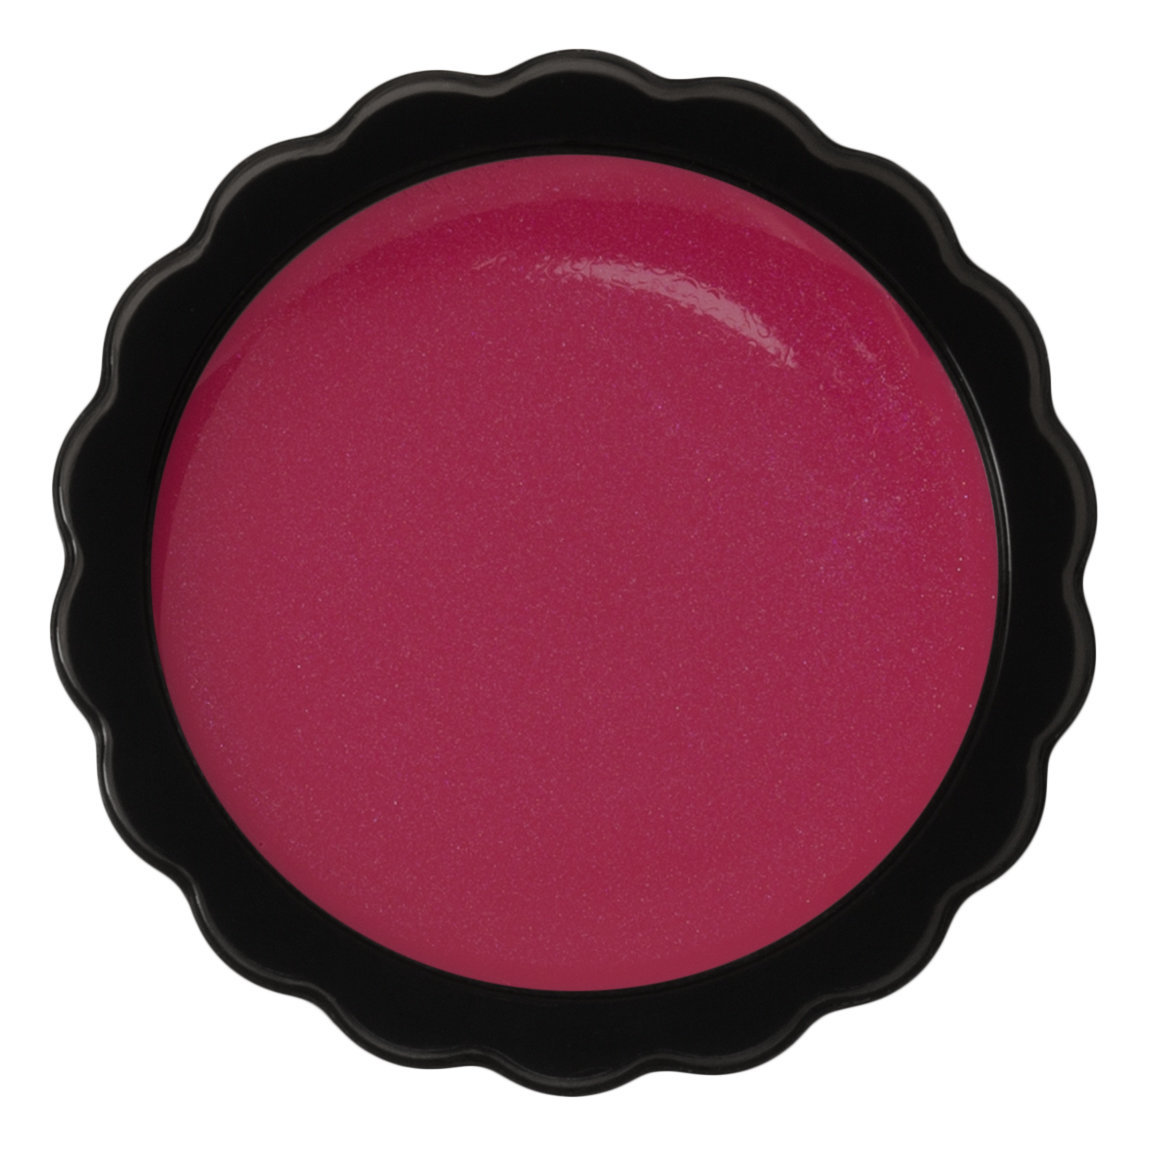 Anna Sui Lip & Face Color Gloss G303 product swatch.